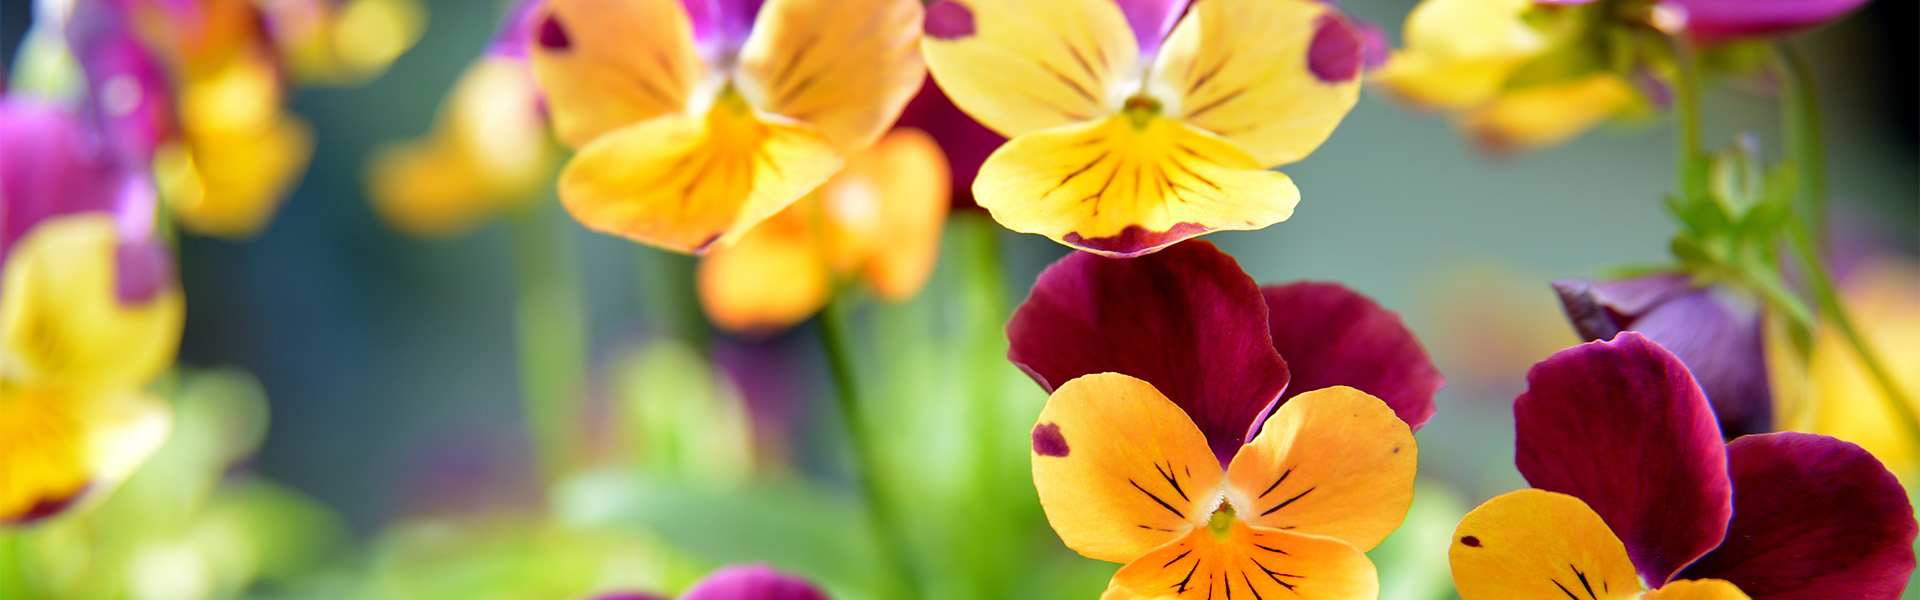 """<p data-aos=fade-up style=""""text-align:center""""><strong>Get enchanted by a tender beauty of pansies</strong></p>  <p data-aos=fade-up style=""""text-align:center"""">in garden center close to you</p> <p class=vice data-aos=fade-up><a href=""""https://www.zahradaflora.cz/en/seasonal-plants"""">More here</a></p>"""